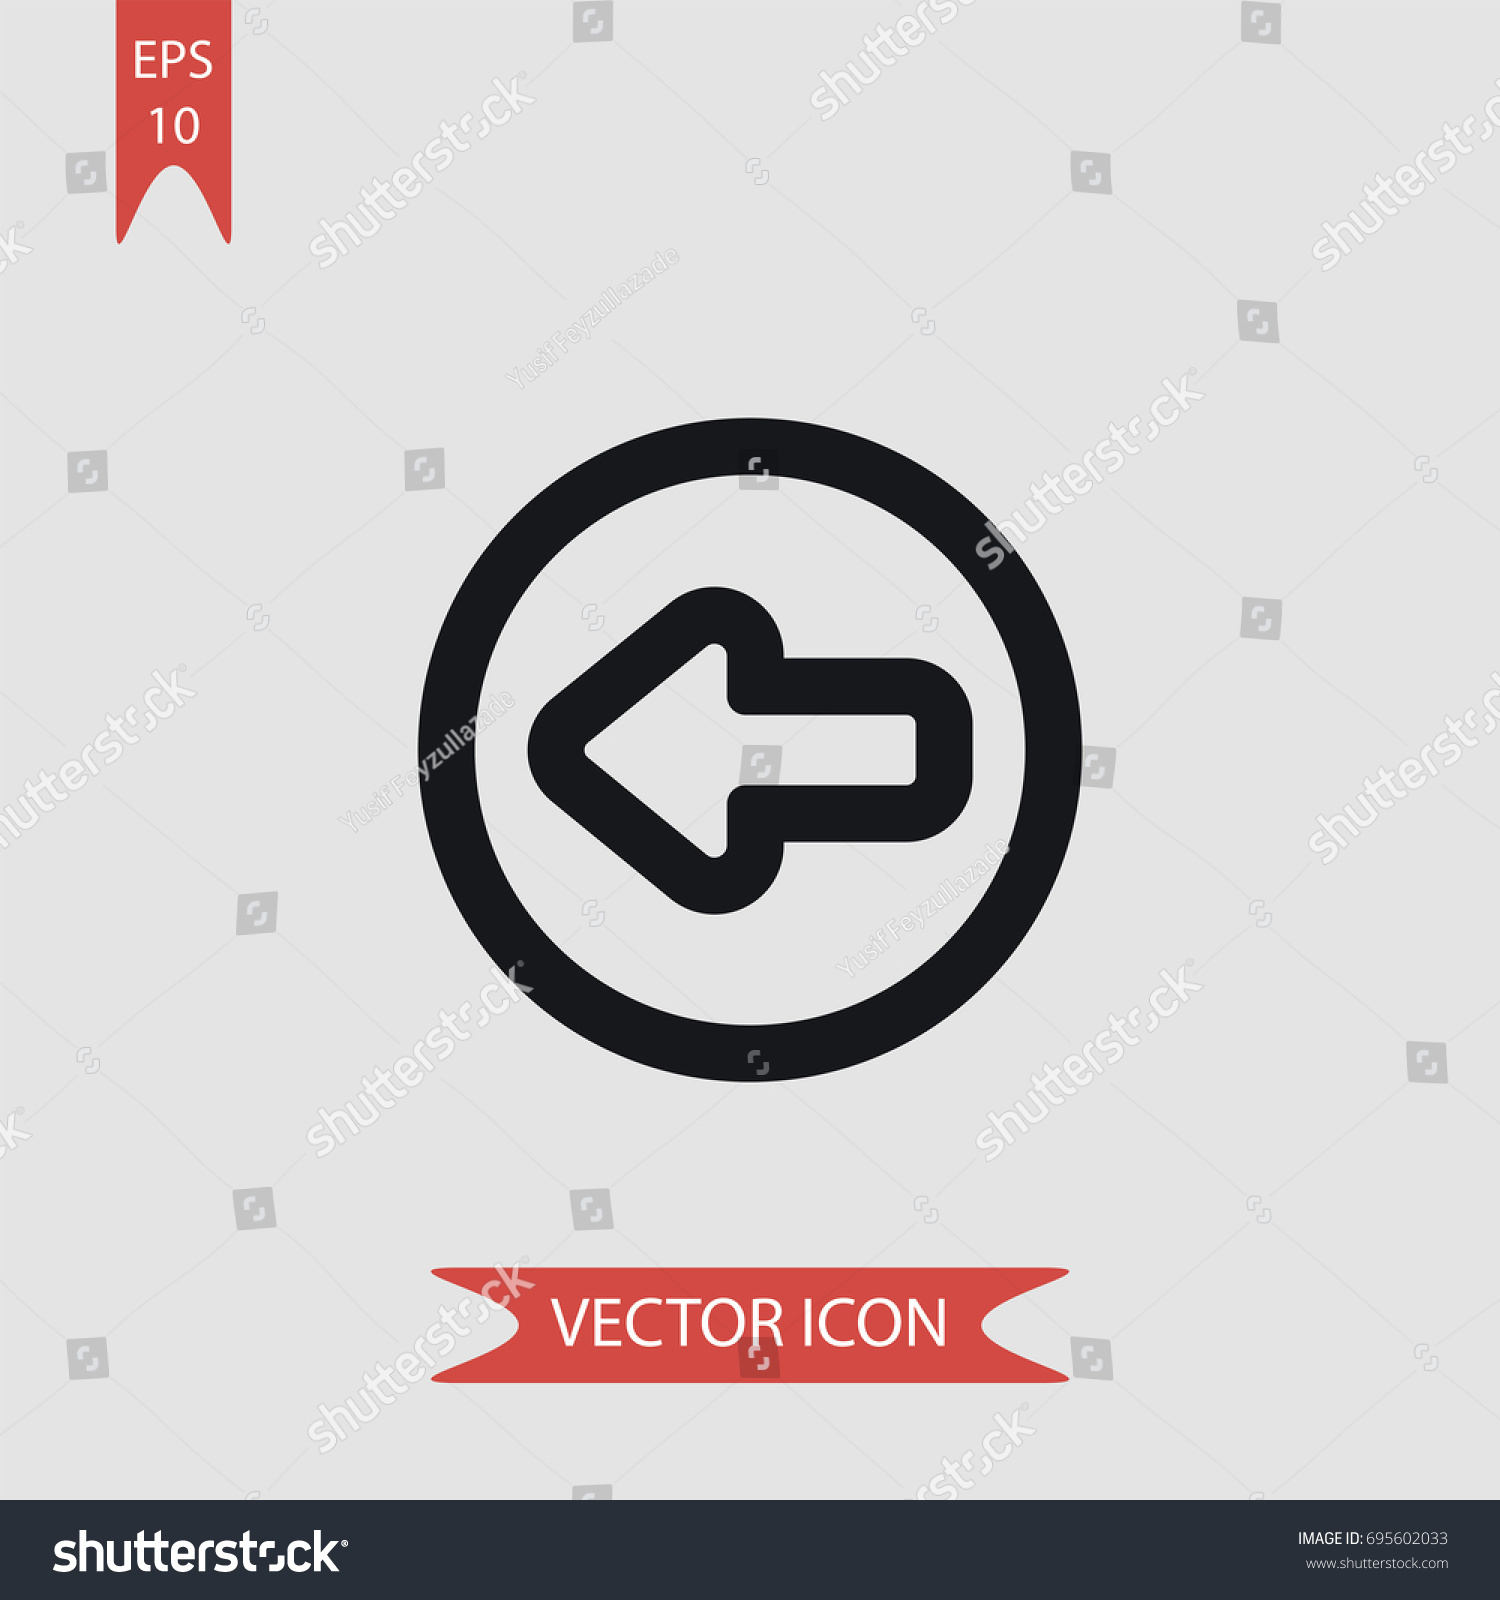 Symbol for tin crossword clue choice image symbol and sign ideas symbol for tin crossword clue gallery symbol and sign ideas boba fett symbol meaning images symbol biocorpaavc